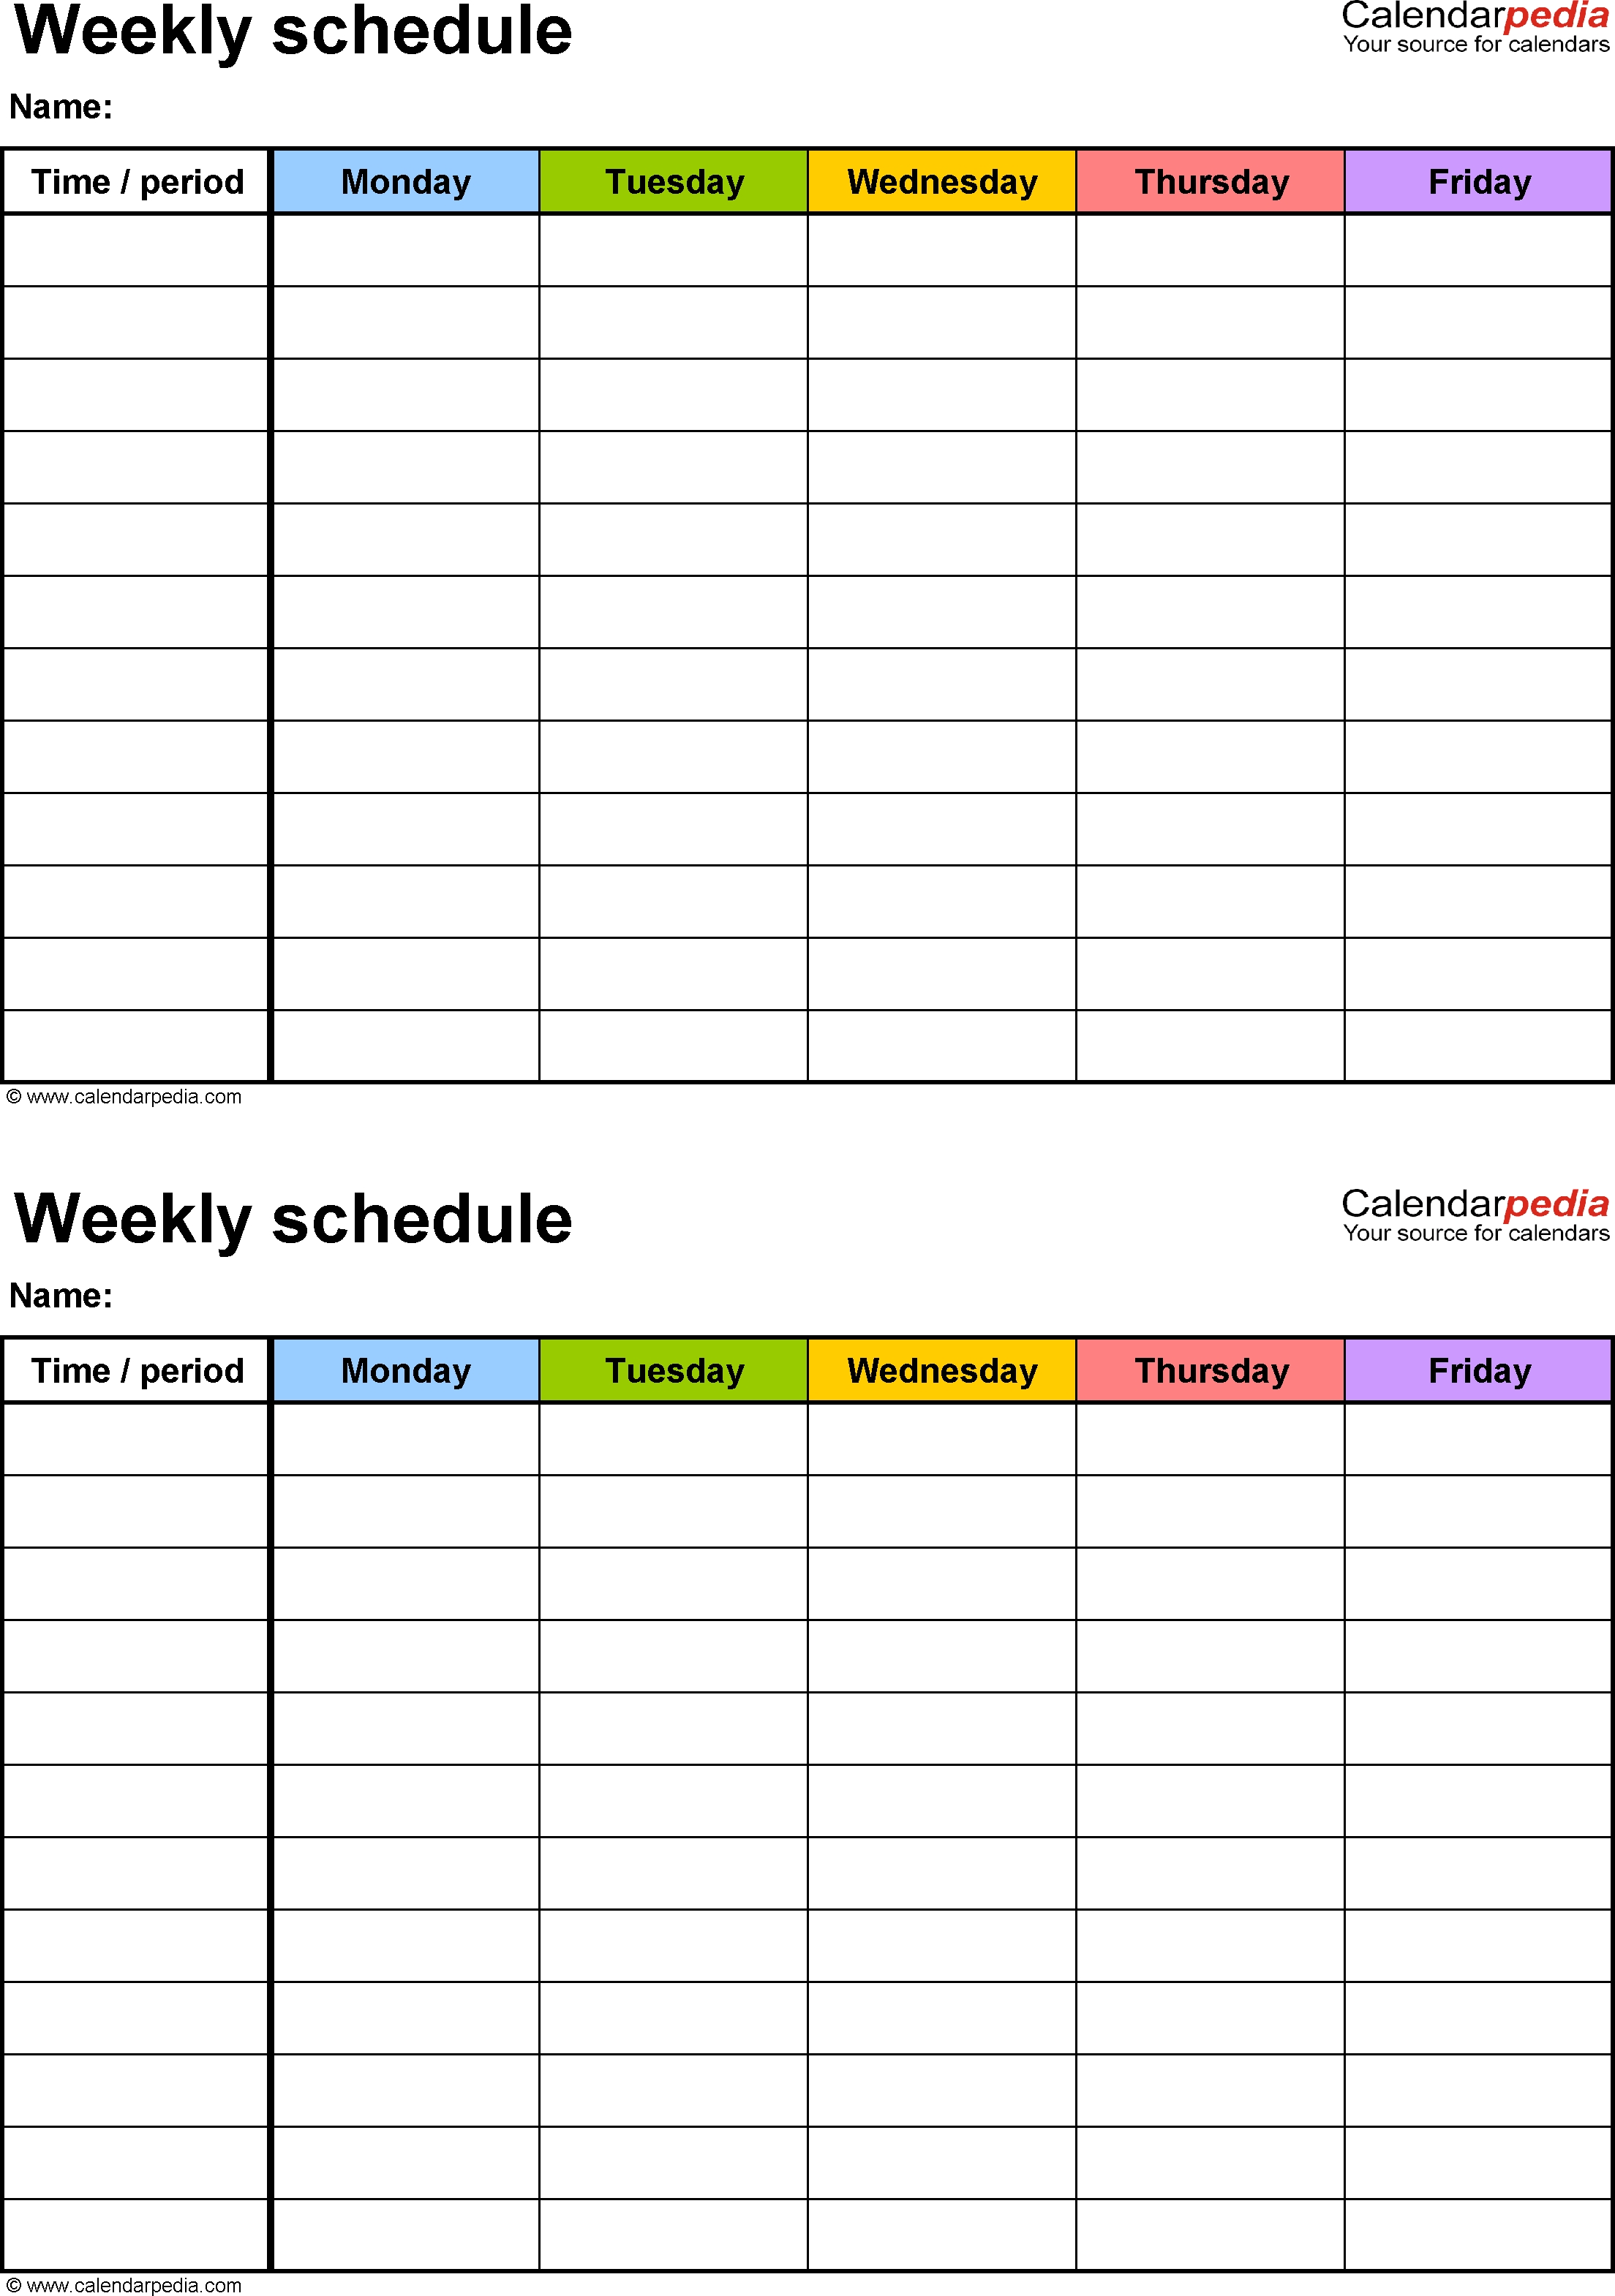 Weekly Schedule Template For Excel Version 3: 2 Schedules On One with Weekly Agenda Monday Through Friday